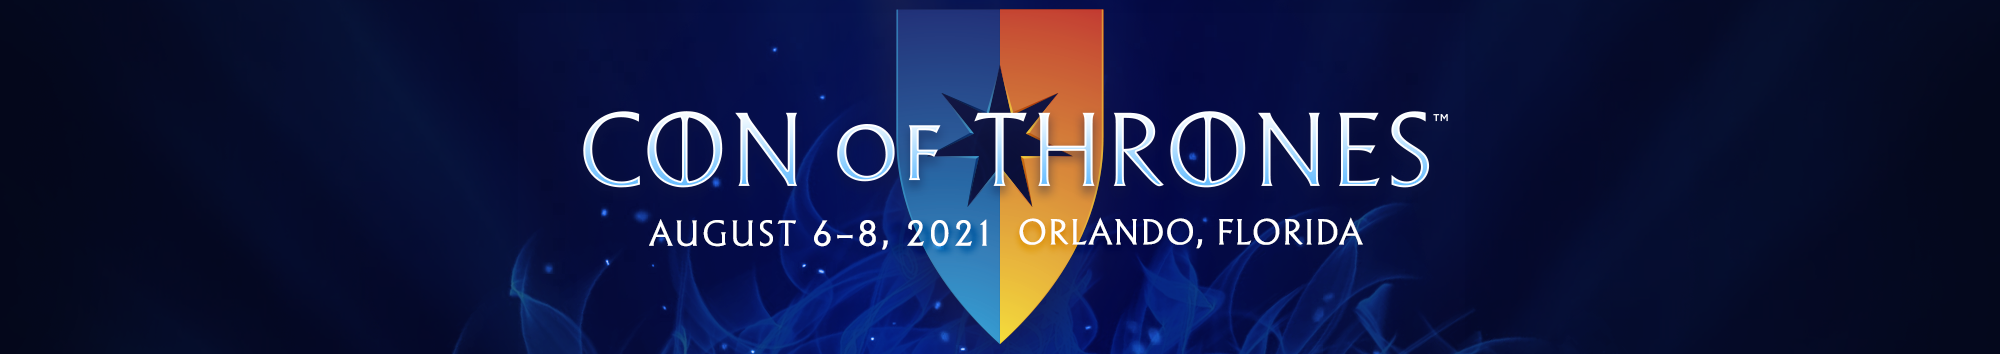 Tickets for Con of Thrones 2021: Add-On Experiences in Orlando from ShowClix